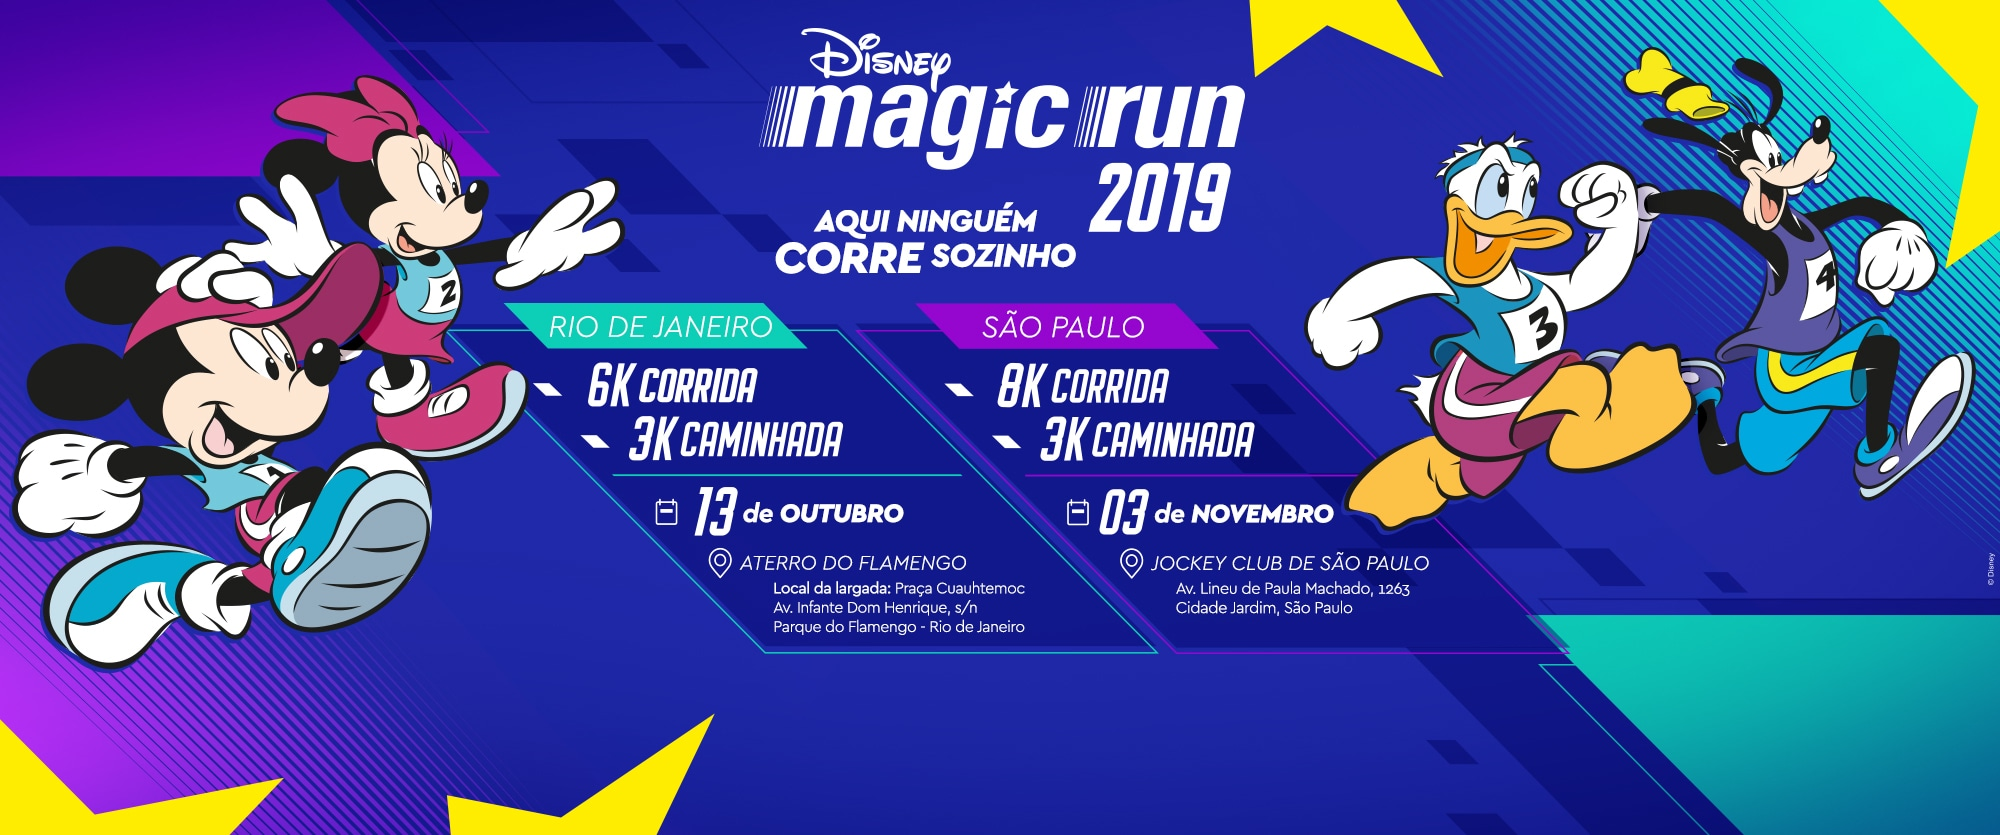 Hero_DisneyMagicRun_Espectaculos_BR